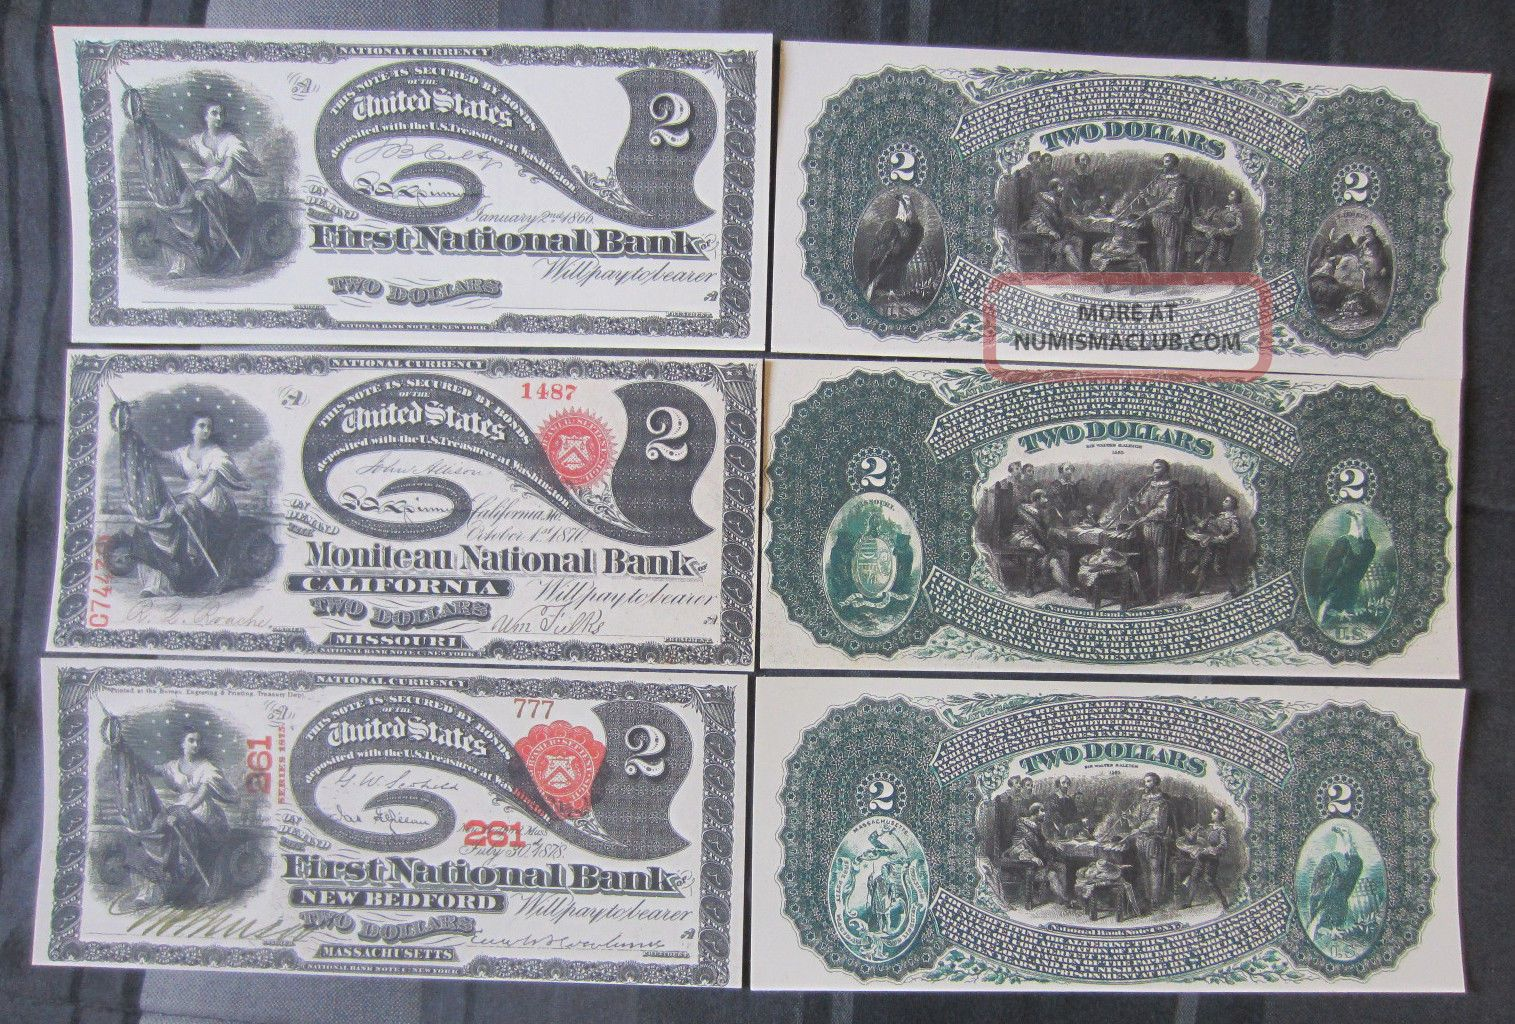 1866 1870 1878 $2 Two Dollars Note Copy Replicas National Currency Lazy Deuces Paper Money: US photo